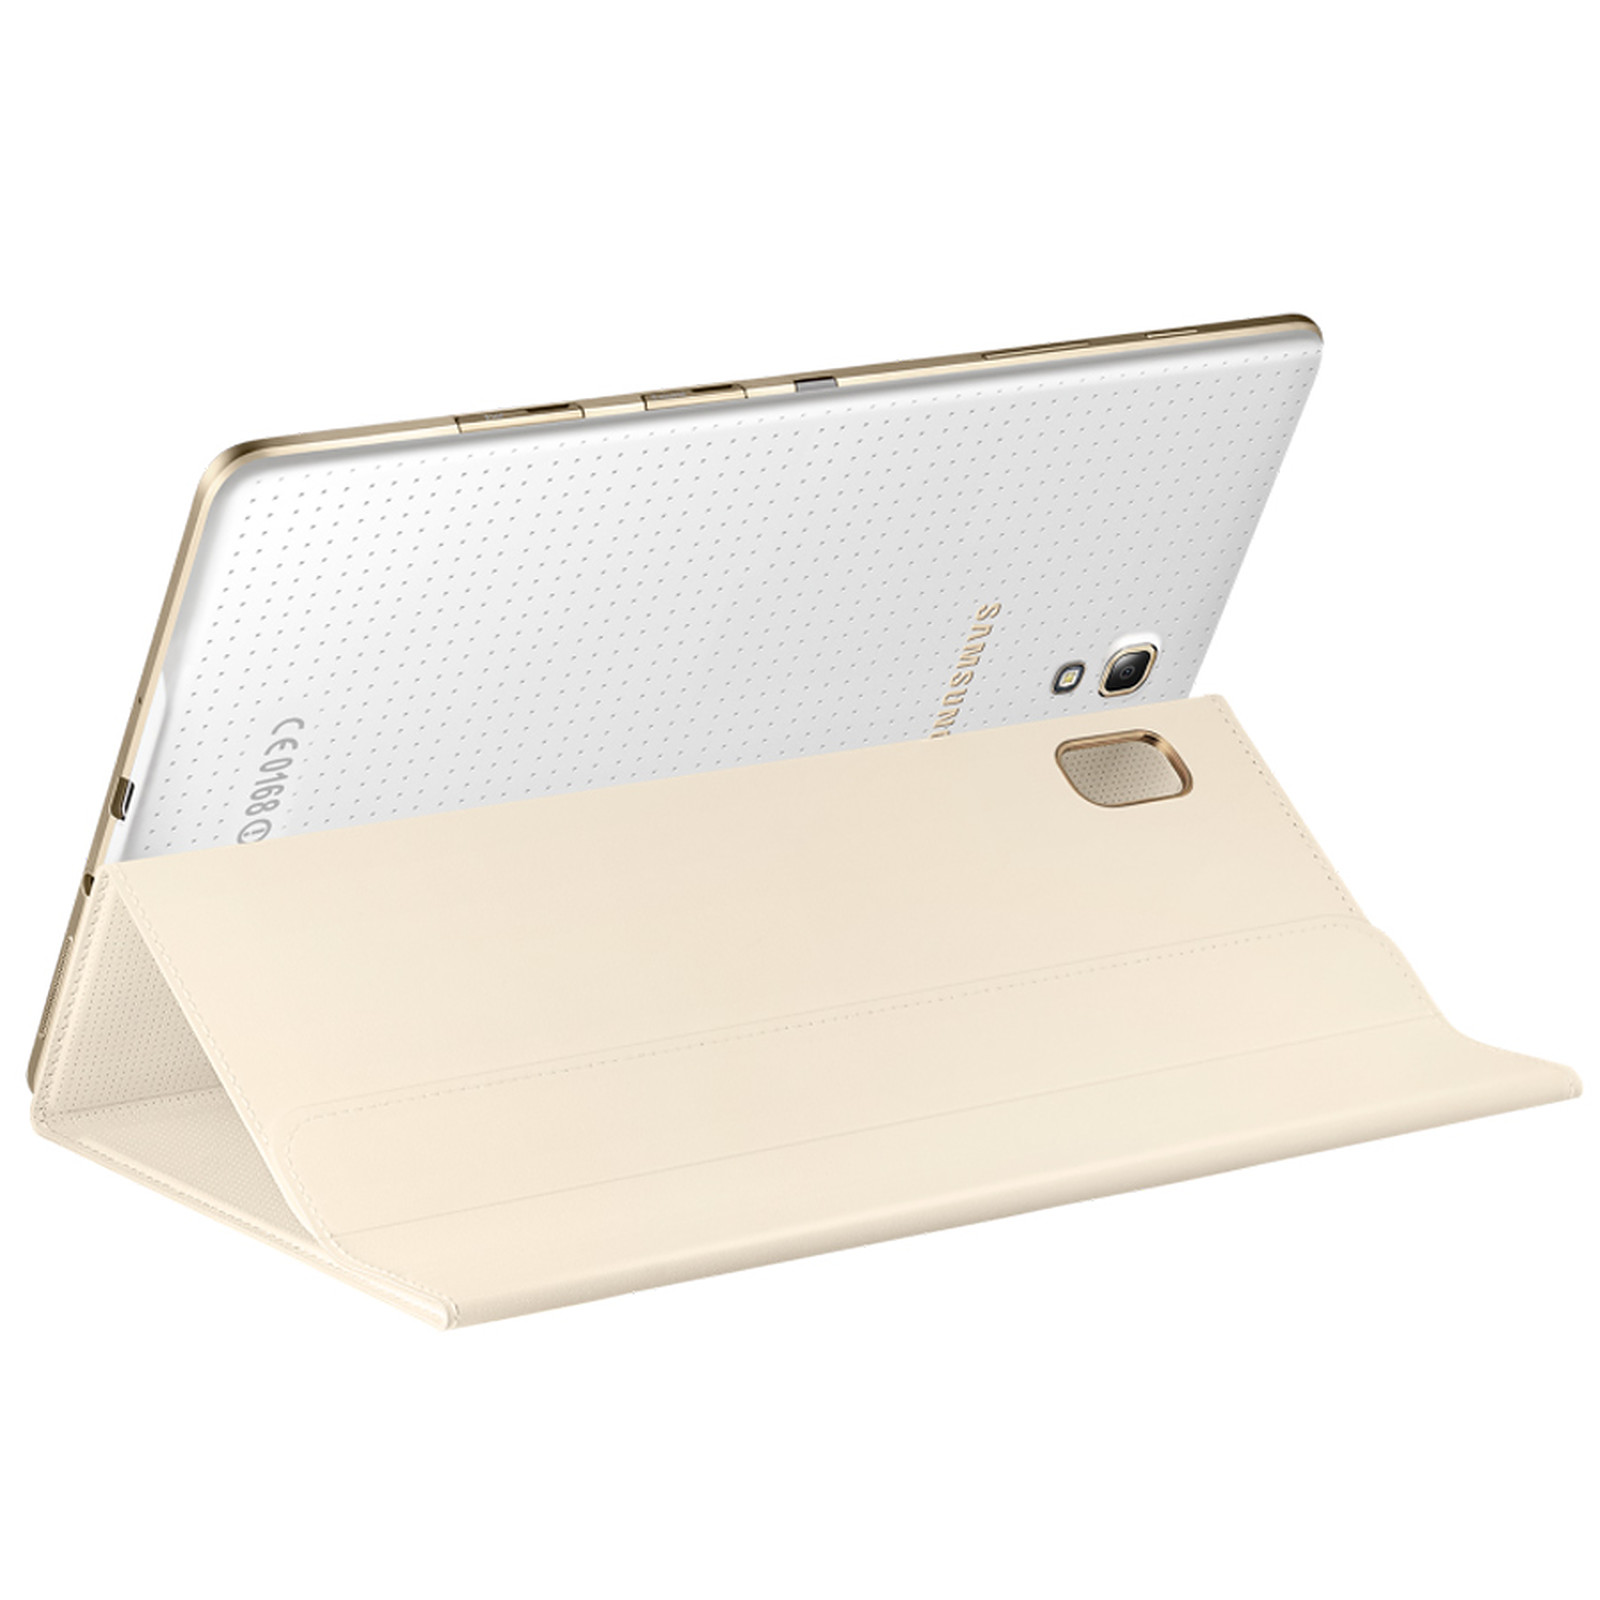 Samsung Book Cover Ef Bt700 Ivoire Pour Samsung Galaxy